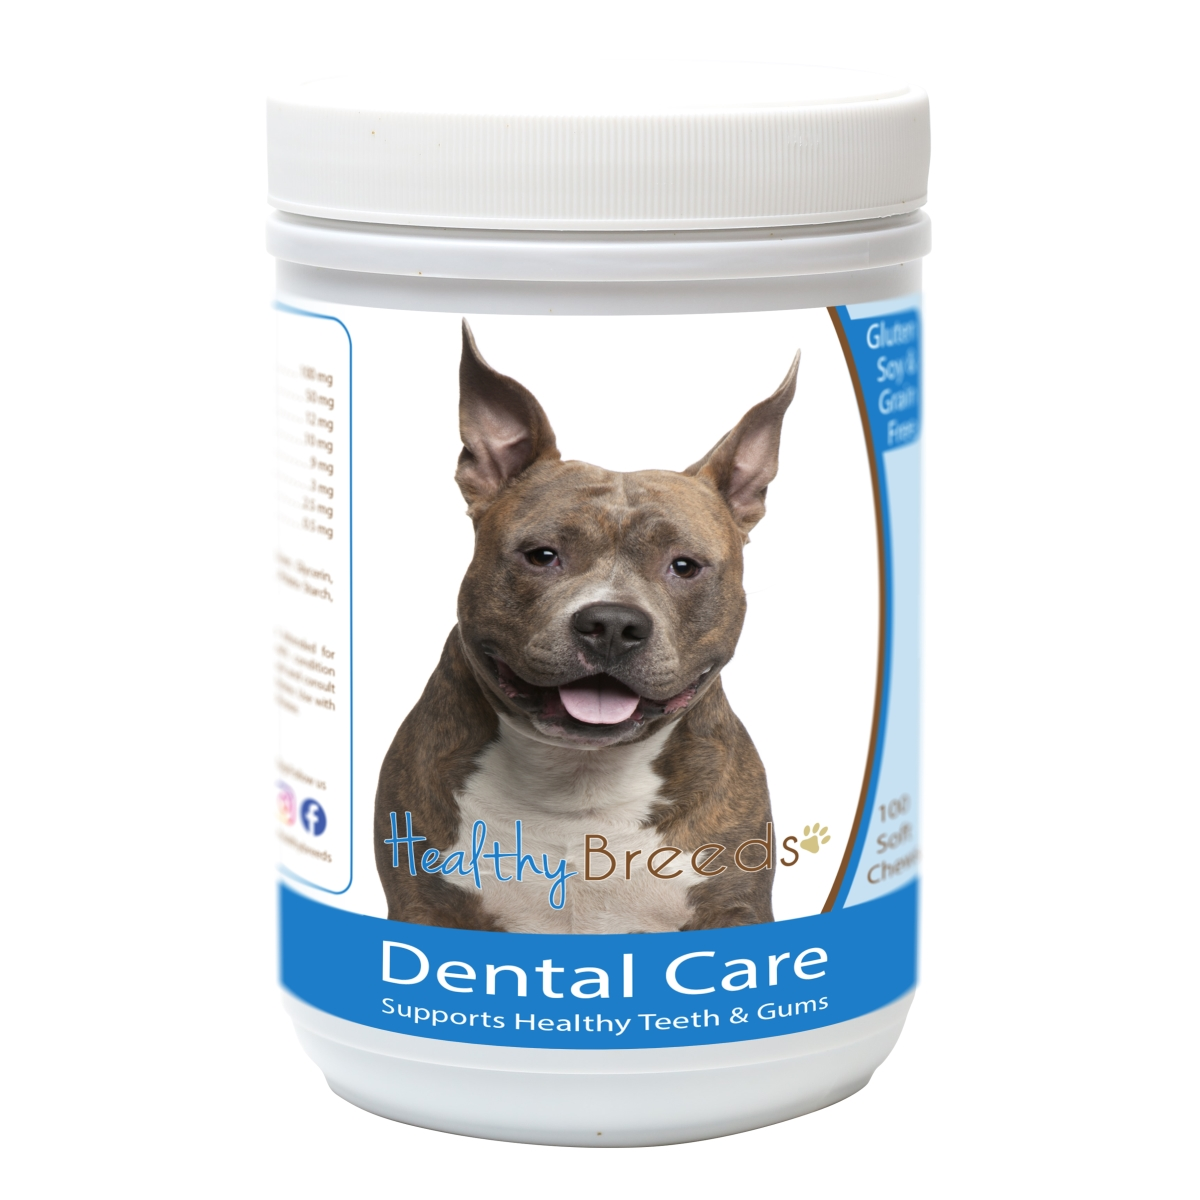 Healthy Breeds 840235163091 American Staffordshire Terrier Breath Care Soft Chews for Dogs - 60 Count